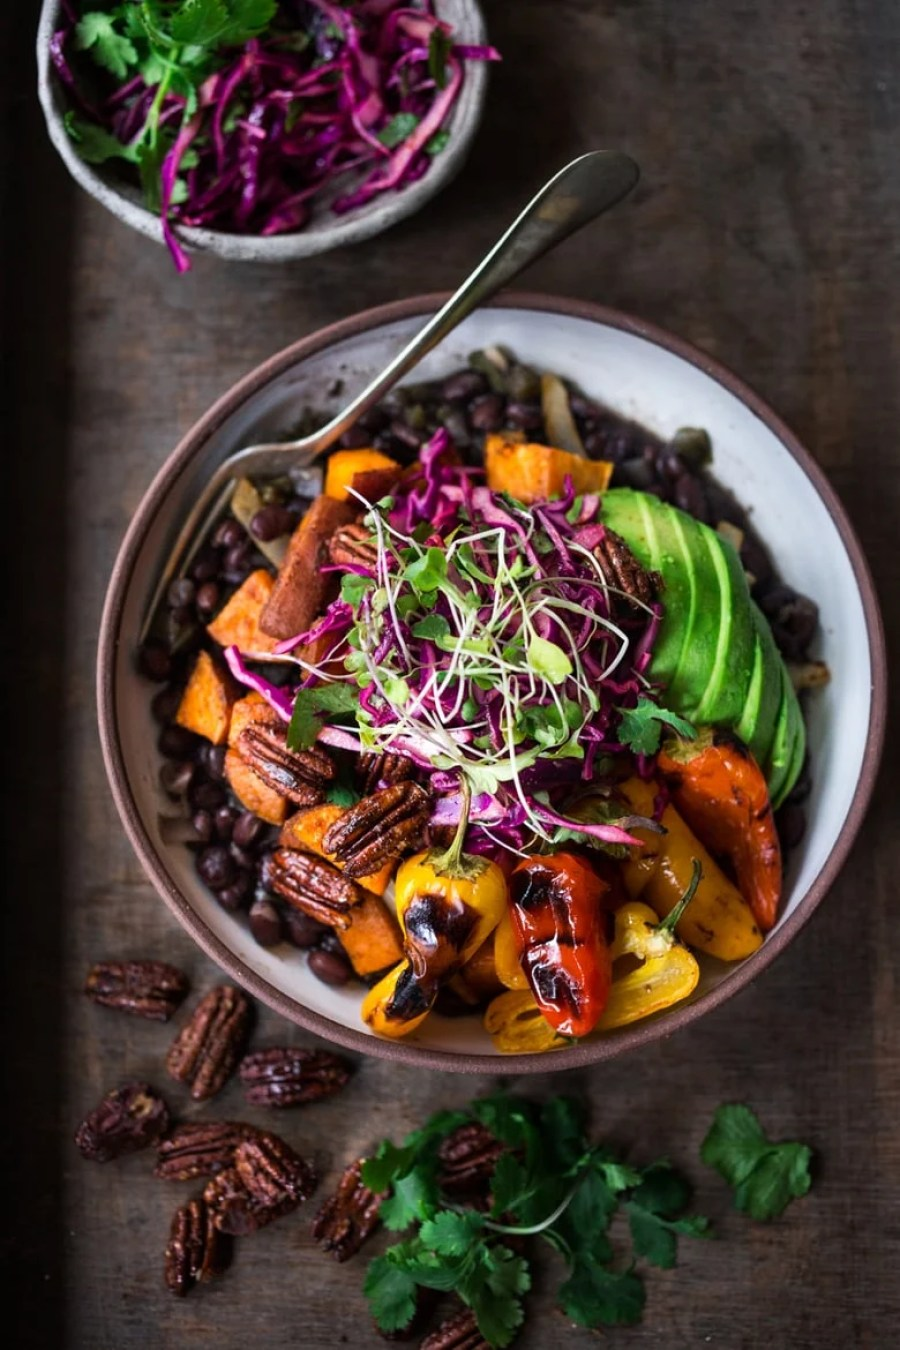 Vegan Mexican-style, Oaxacan Bowl with roasted chipotle sweet potatoes and sweet peppers over a bed of warm seasoned black beans. Topped with a crunchy cabbage slaw, avocado and toasted Chipotle Maple Pecans. | www.feastingathome.com